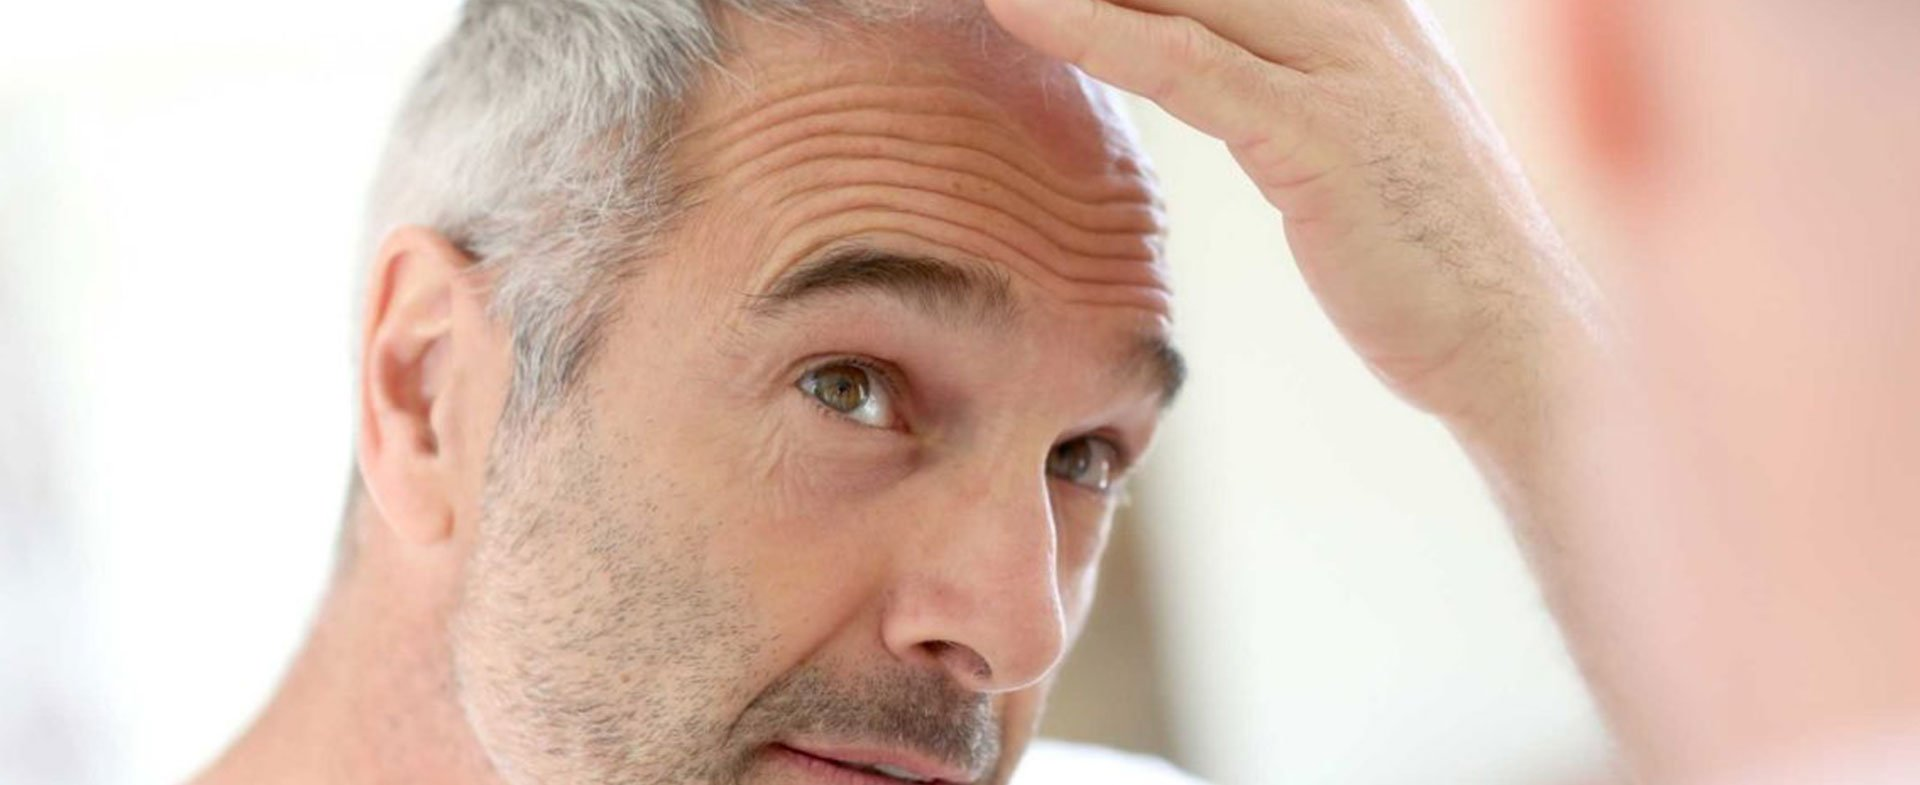 PRP for hair loss 2 1140x570